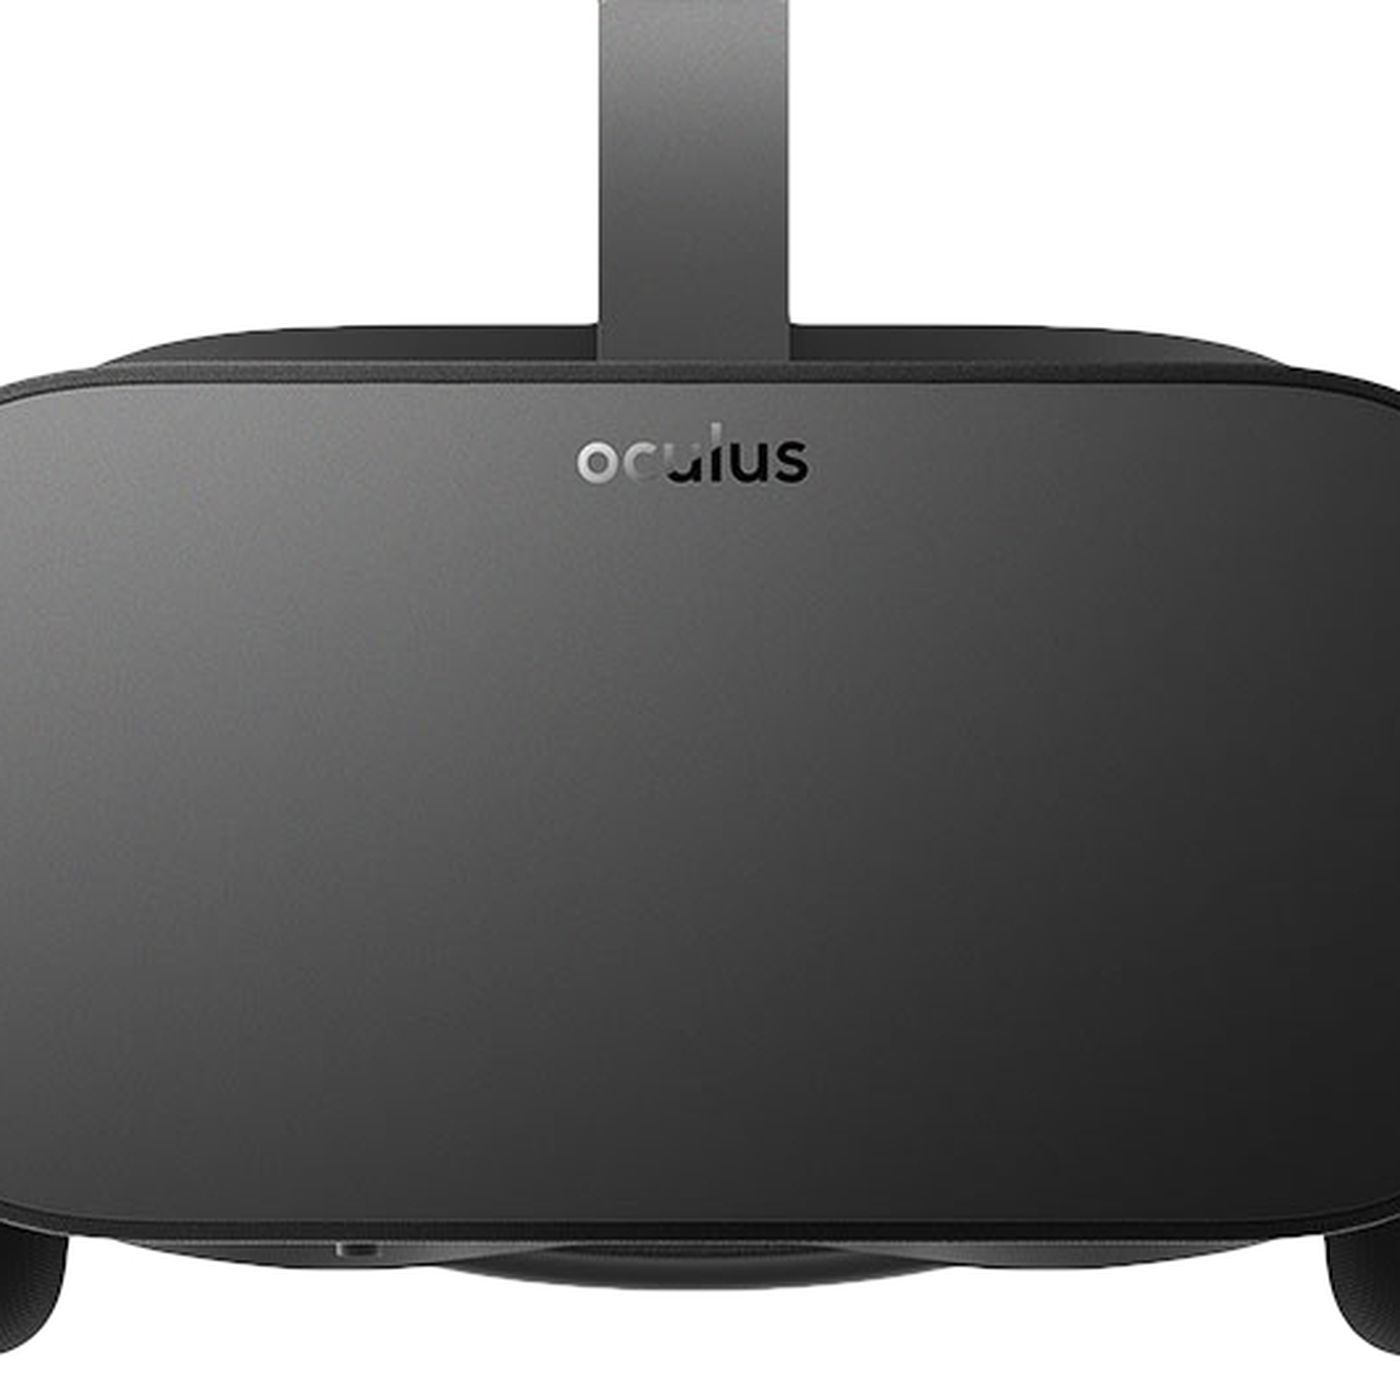 fcd889450b5 Oculus launch gets stranger as hardware hits Best Buy and others before  pre-orders fulfilled